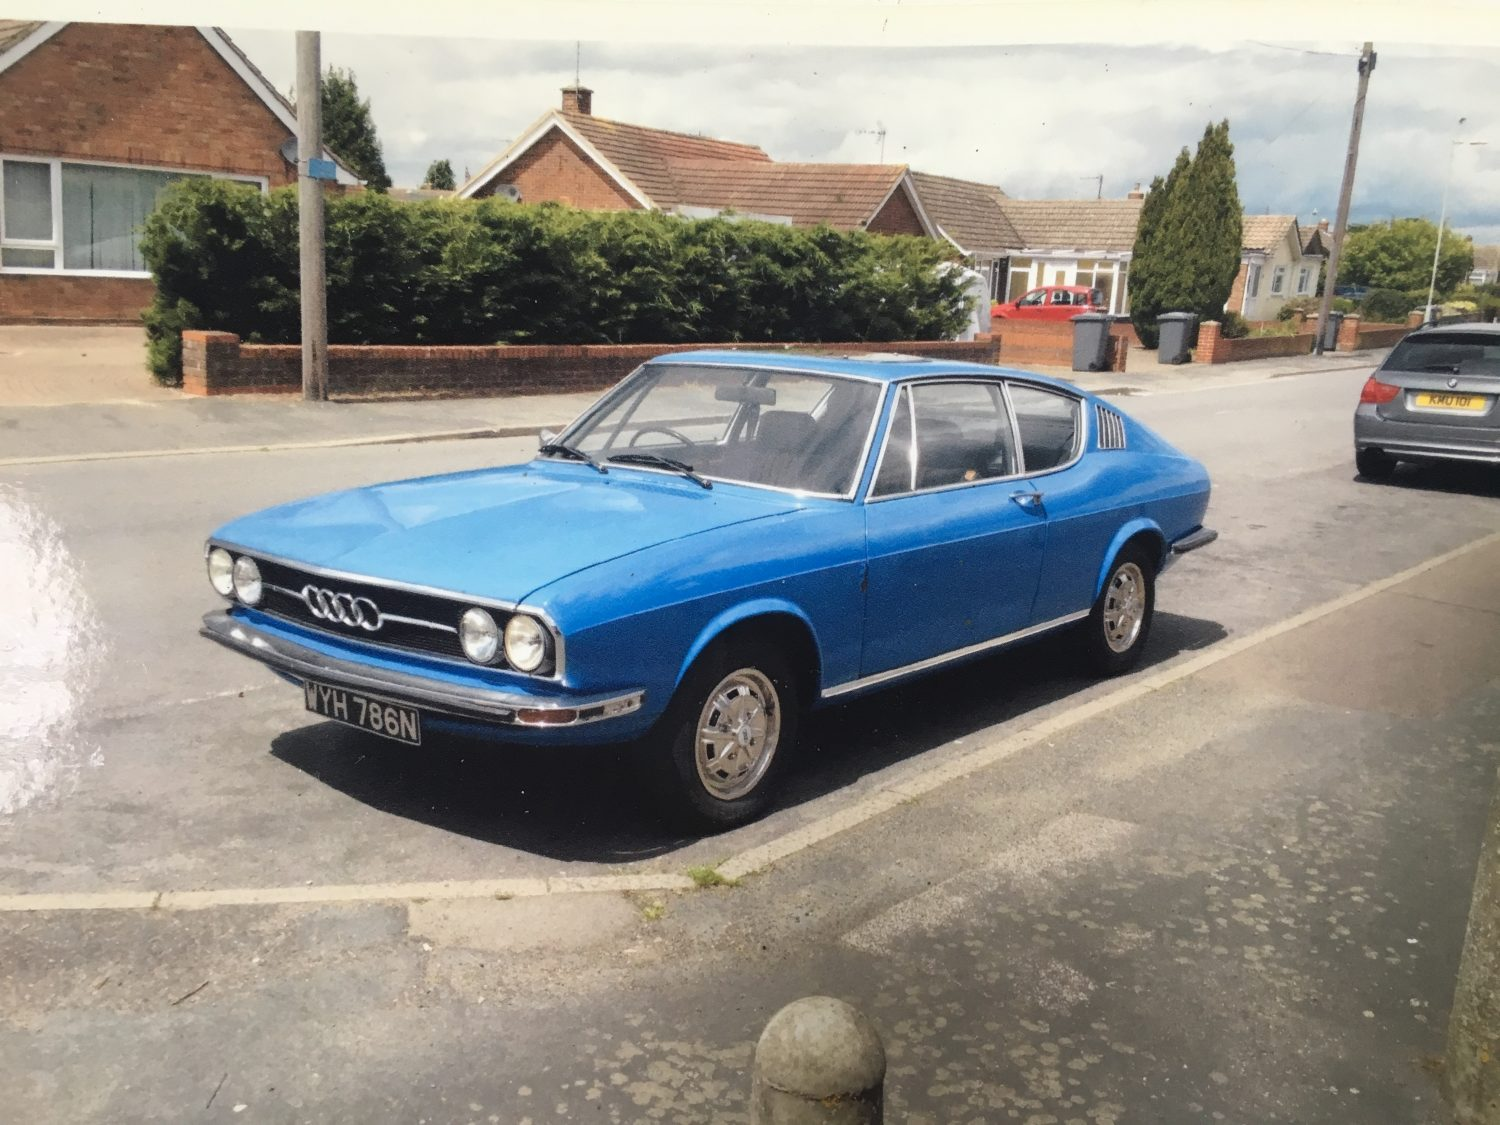 Coming in soon for restoration – 1974 Audi 100